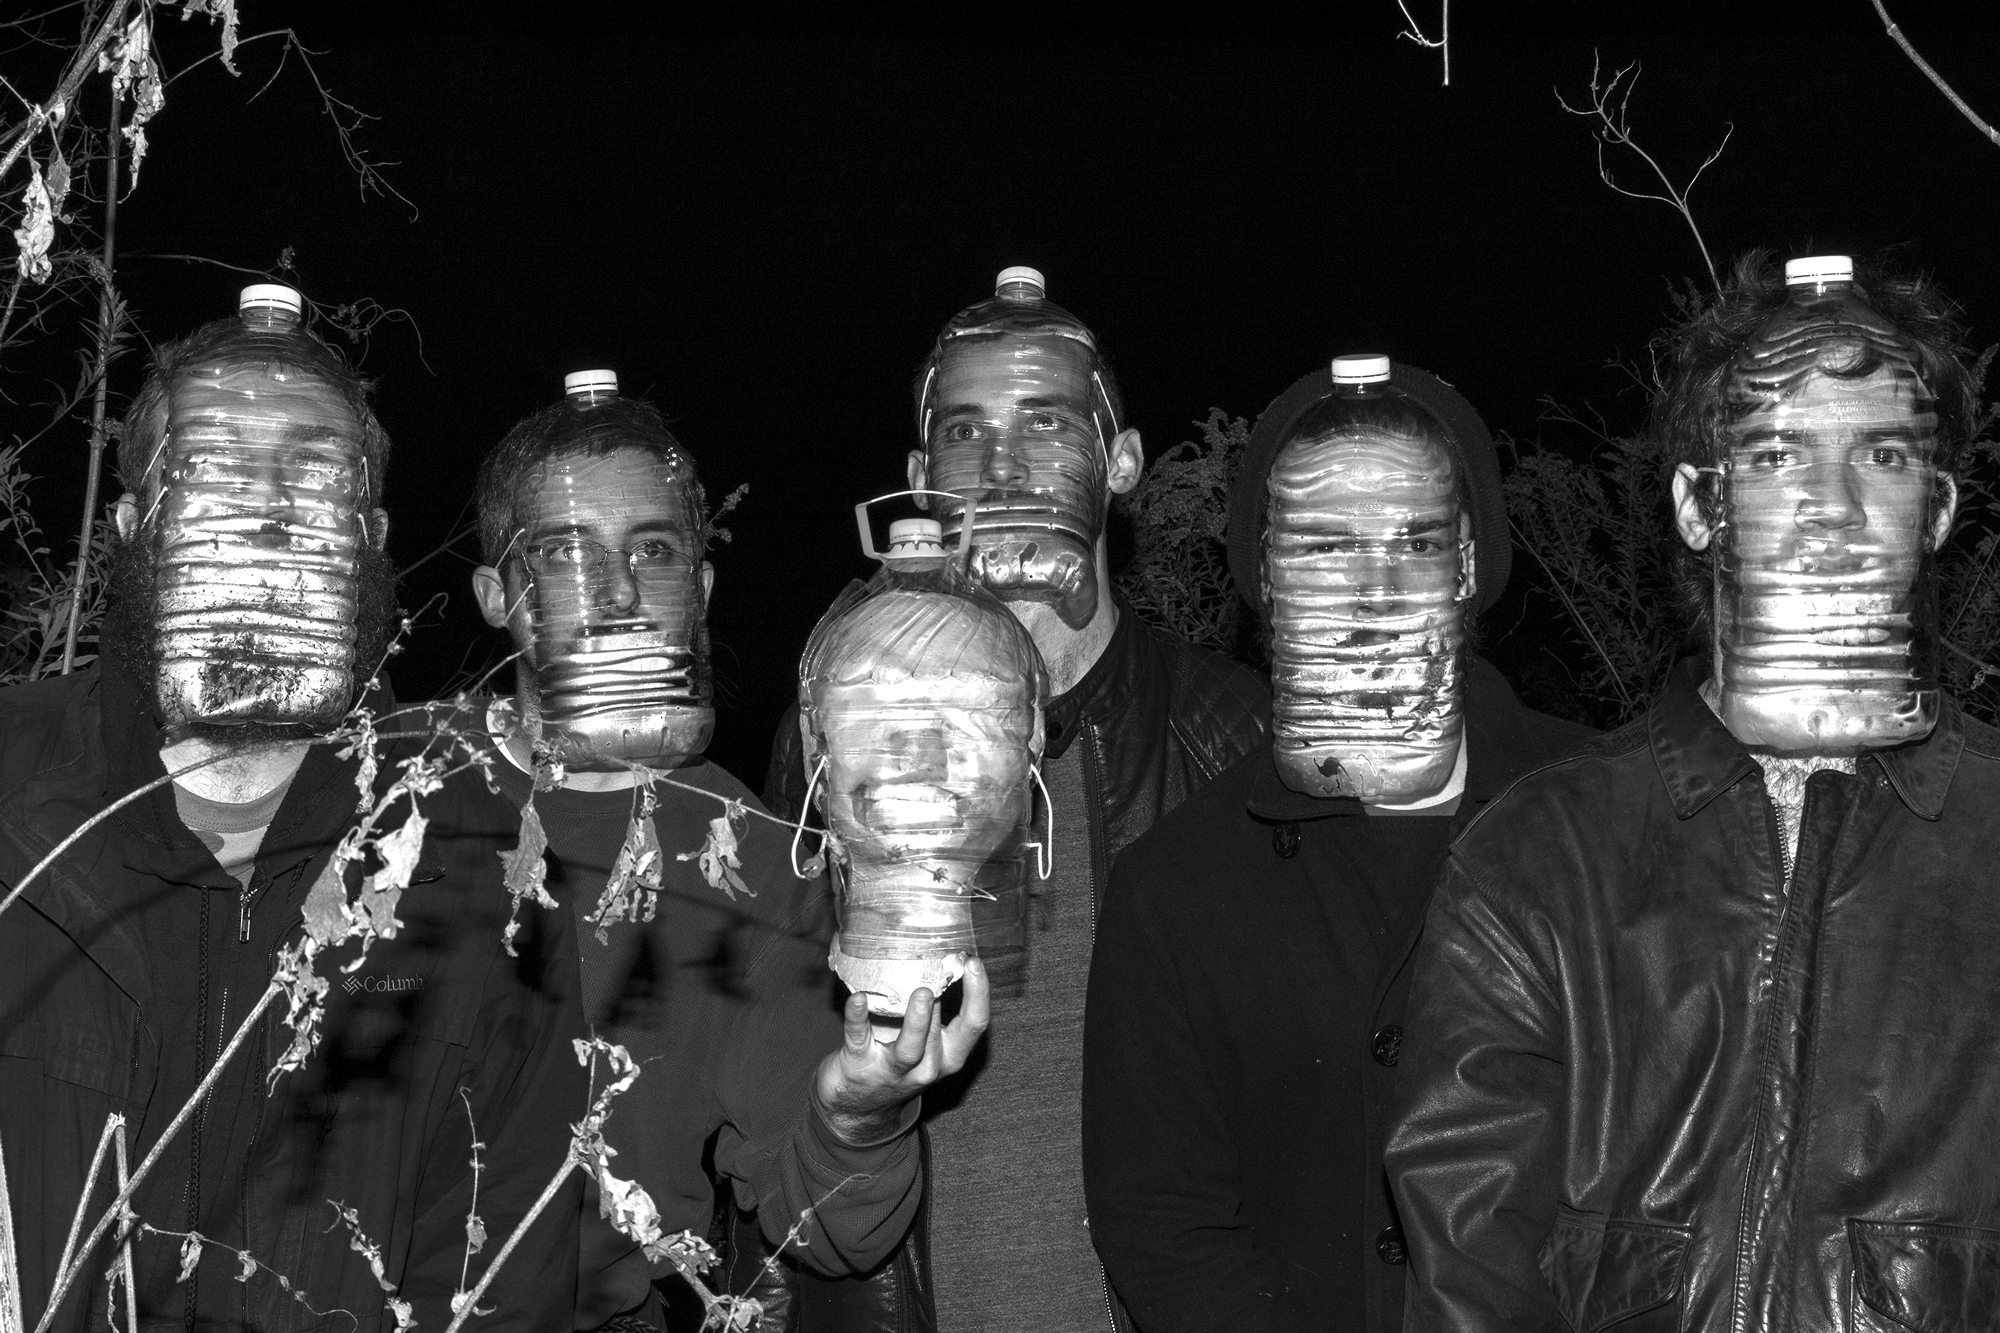 A black and white photo of 5 light-skinned people, Alex Brownstein-Carter, Eric Buller, Joe Ceponis, David Sigler, David Sabludowsky, whose faces are warped by gallon water bottles that they are wearing as masks tied around their heads. They are all wearing dark jackets and shirts. They are all staring straight ahead with their arms by their side except for the person second from the left who is holding up a mannequin head which also has a water bottle mask. The sky behind them is black and we can see some trees above and behind them. Photo by Sean Moore.